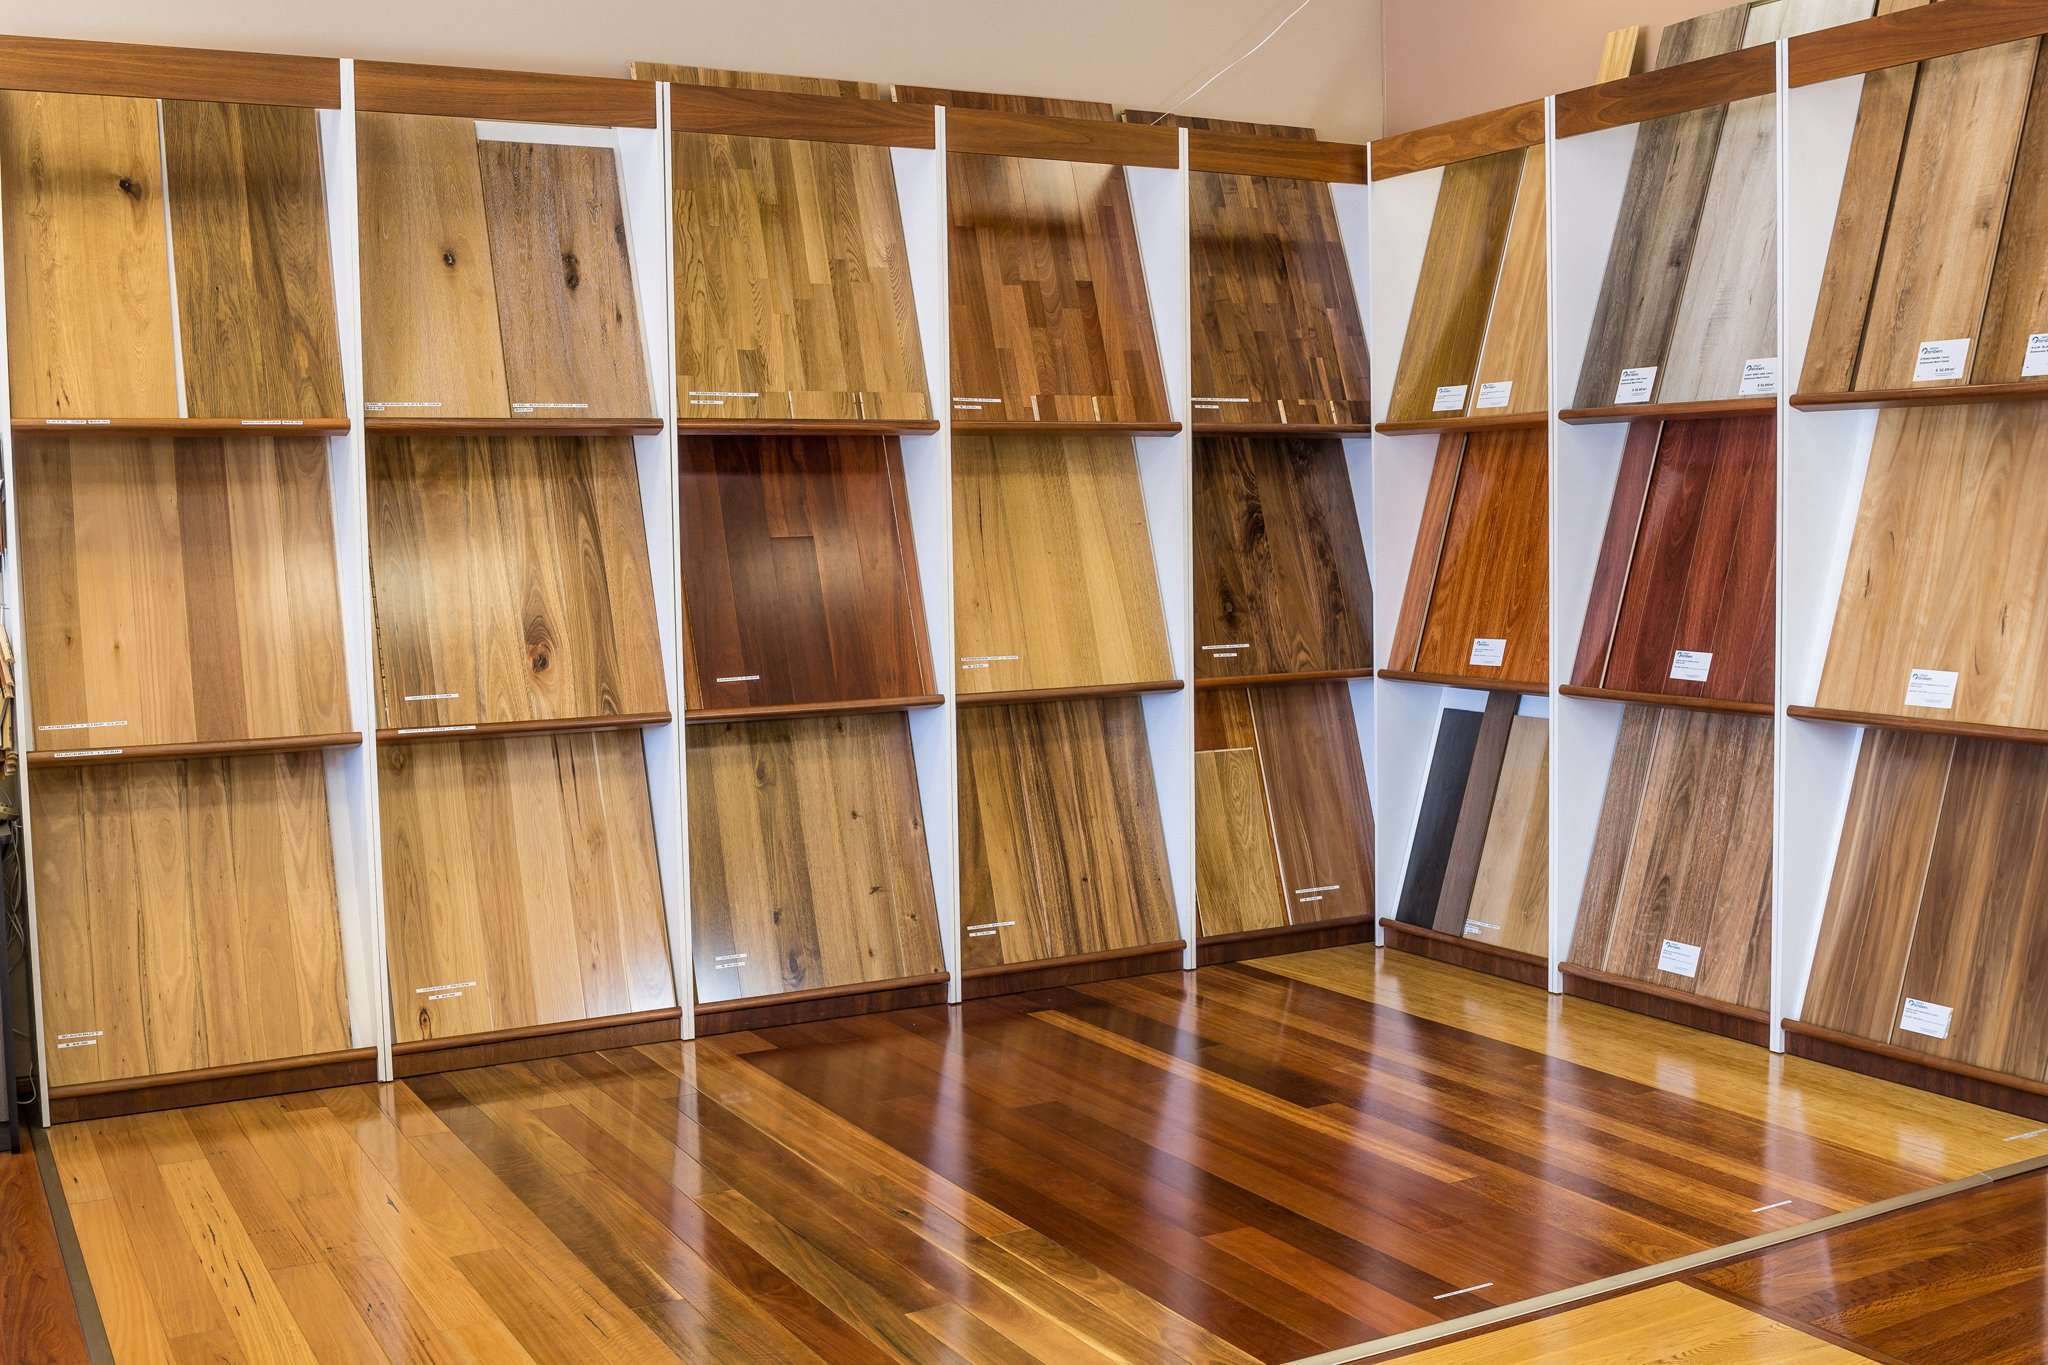 bamboo hardwood flooring prices of wood floor price lists a1 wood floors in 12mm laminate on sale 28 00 ma²